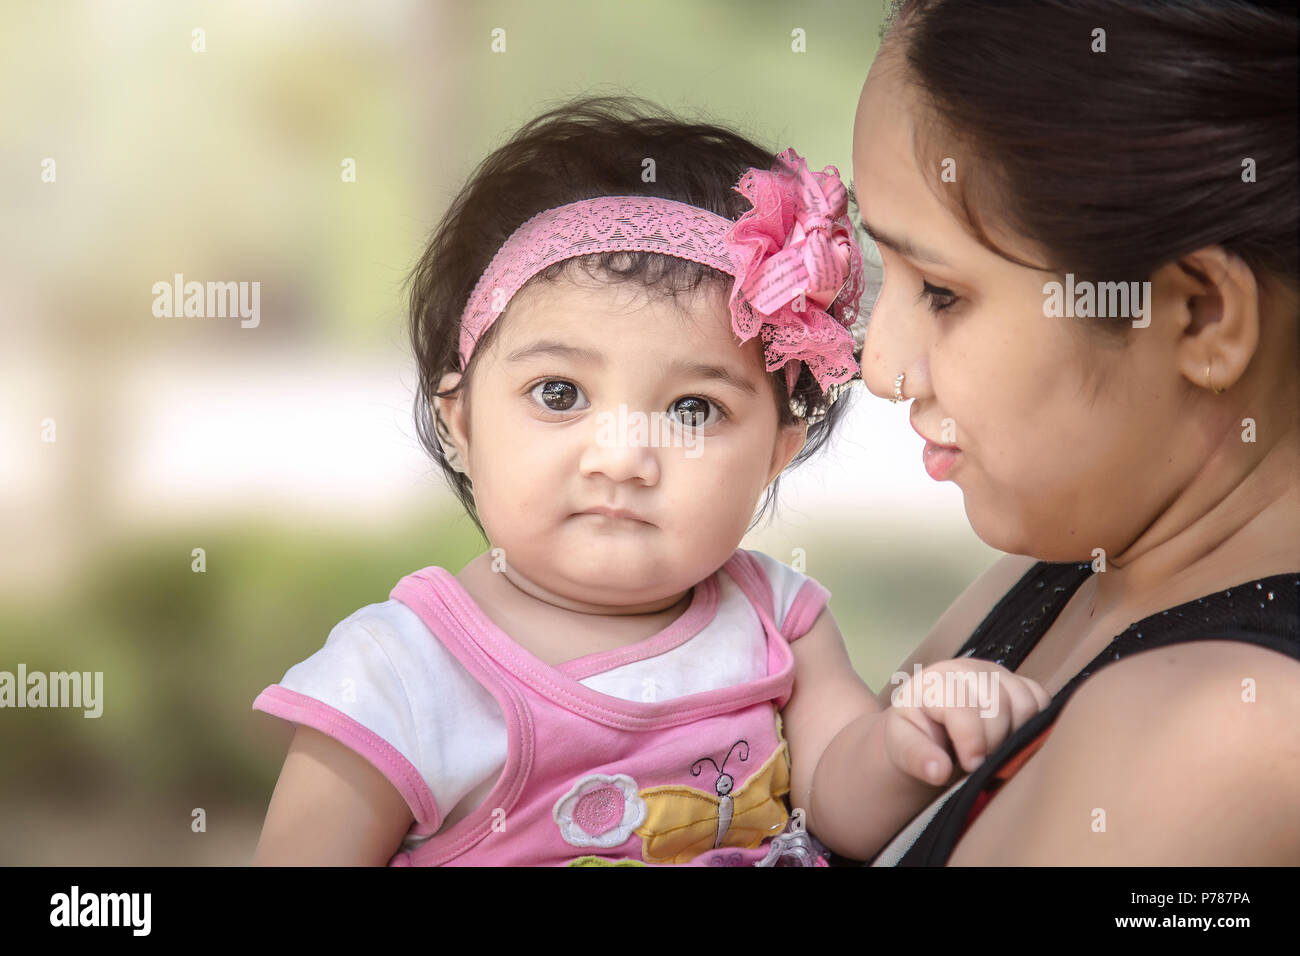 Sad Indian/Asian baby girl in mother arm. - Stock Image